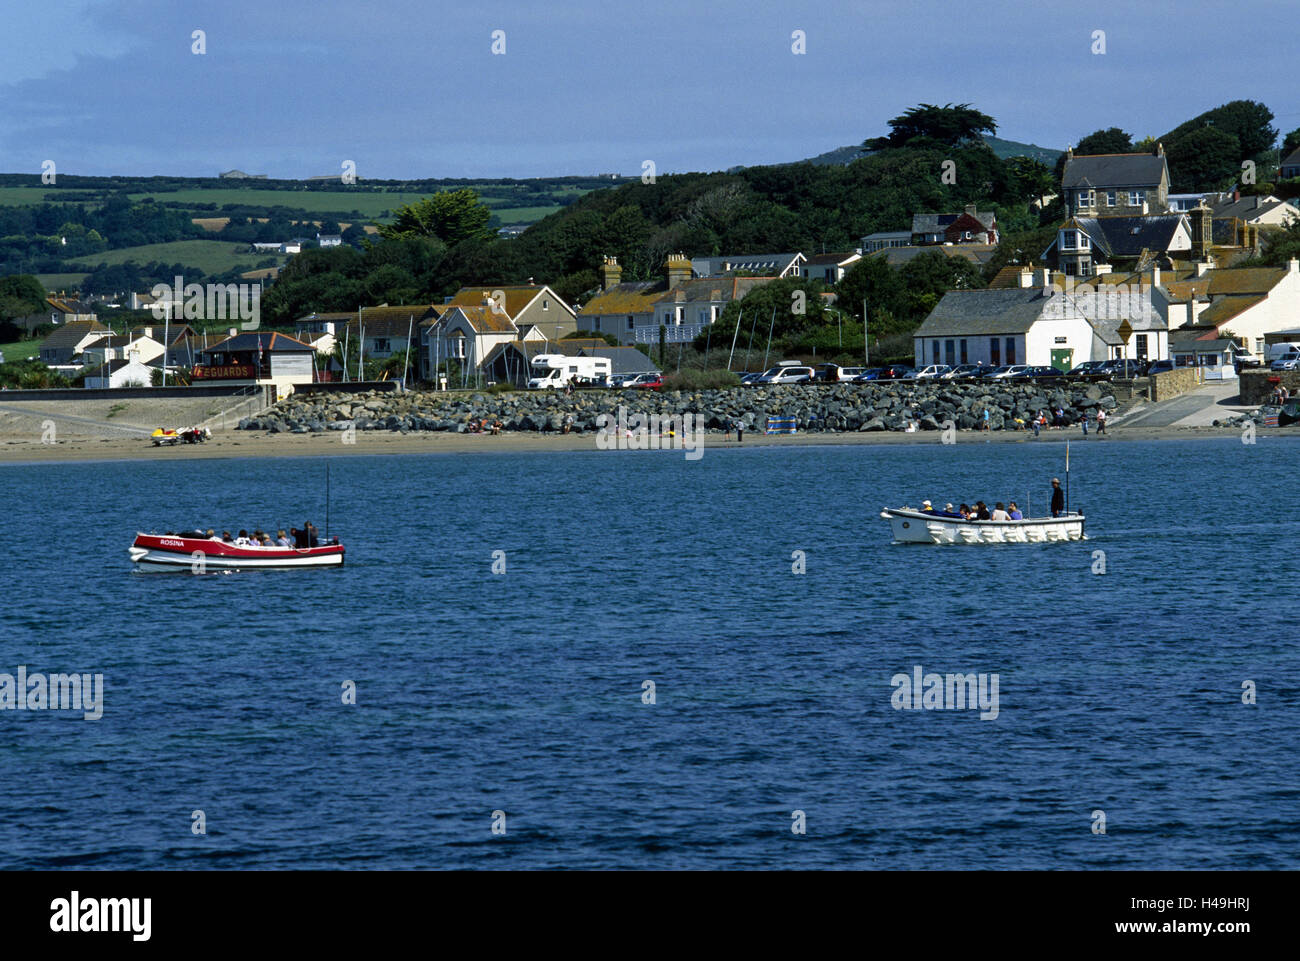 Great Britain, Cornwall, Marazion, ferryboats, local view, - Stock Image